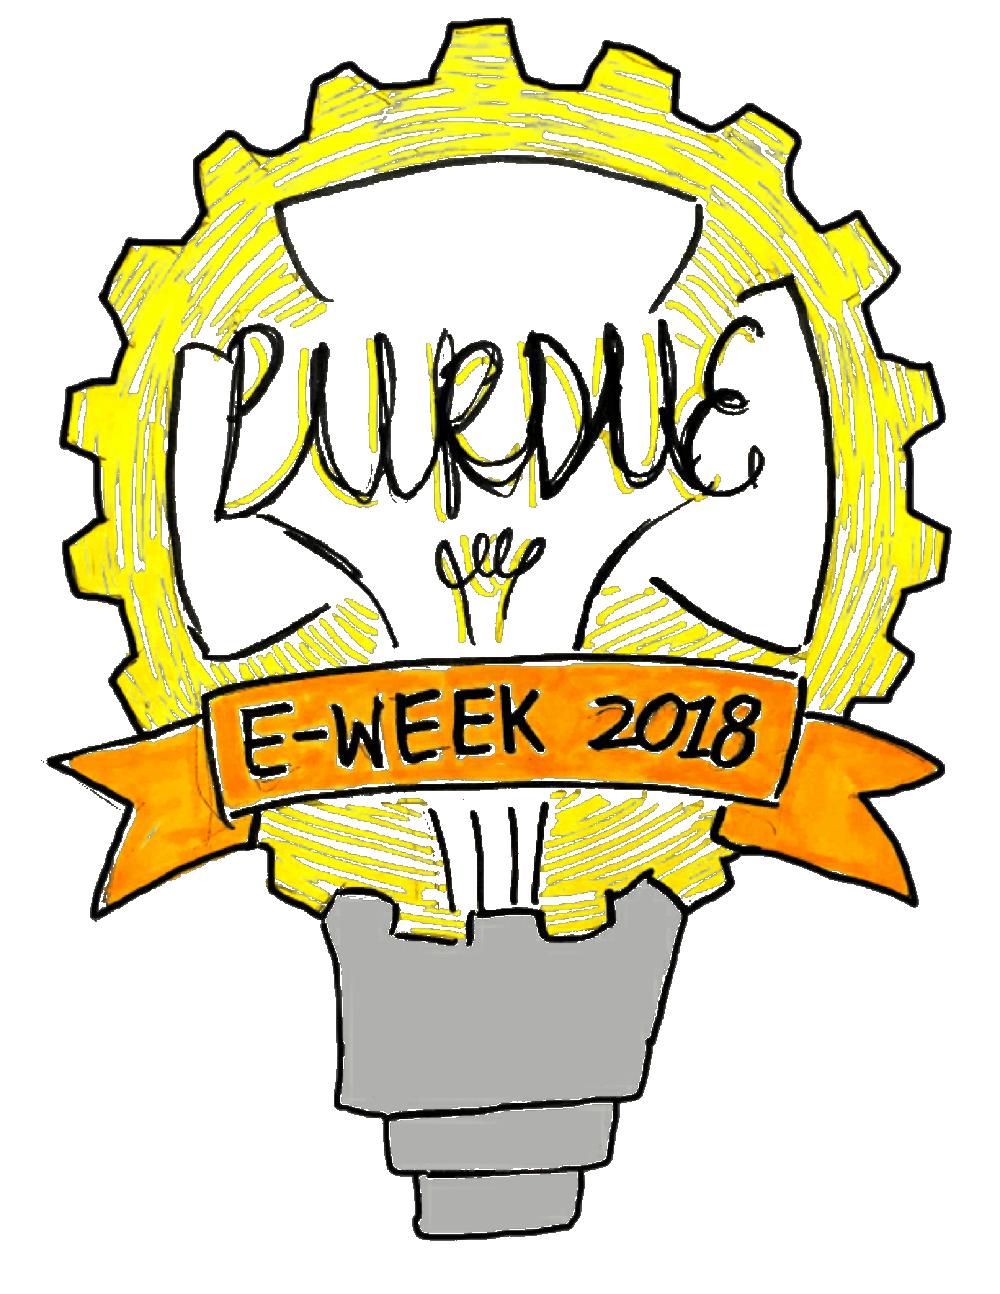 Professional clipart engineering student. Purdue national engineers week